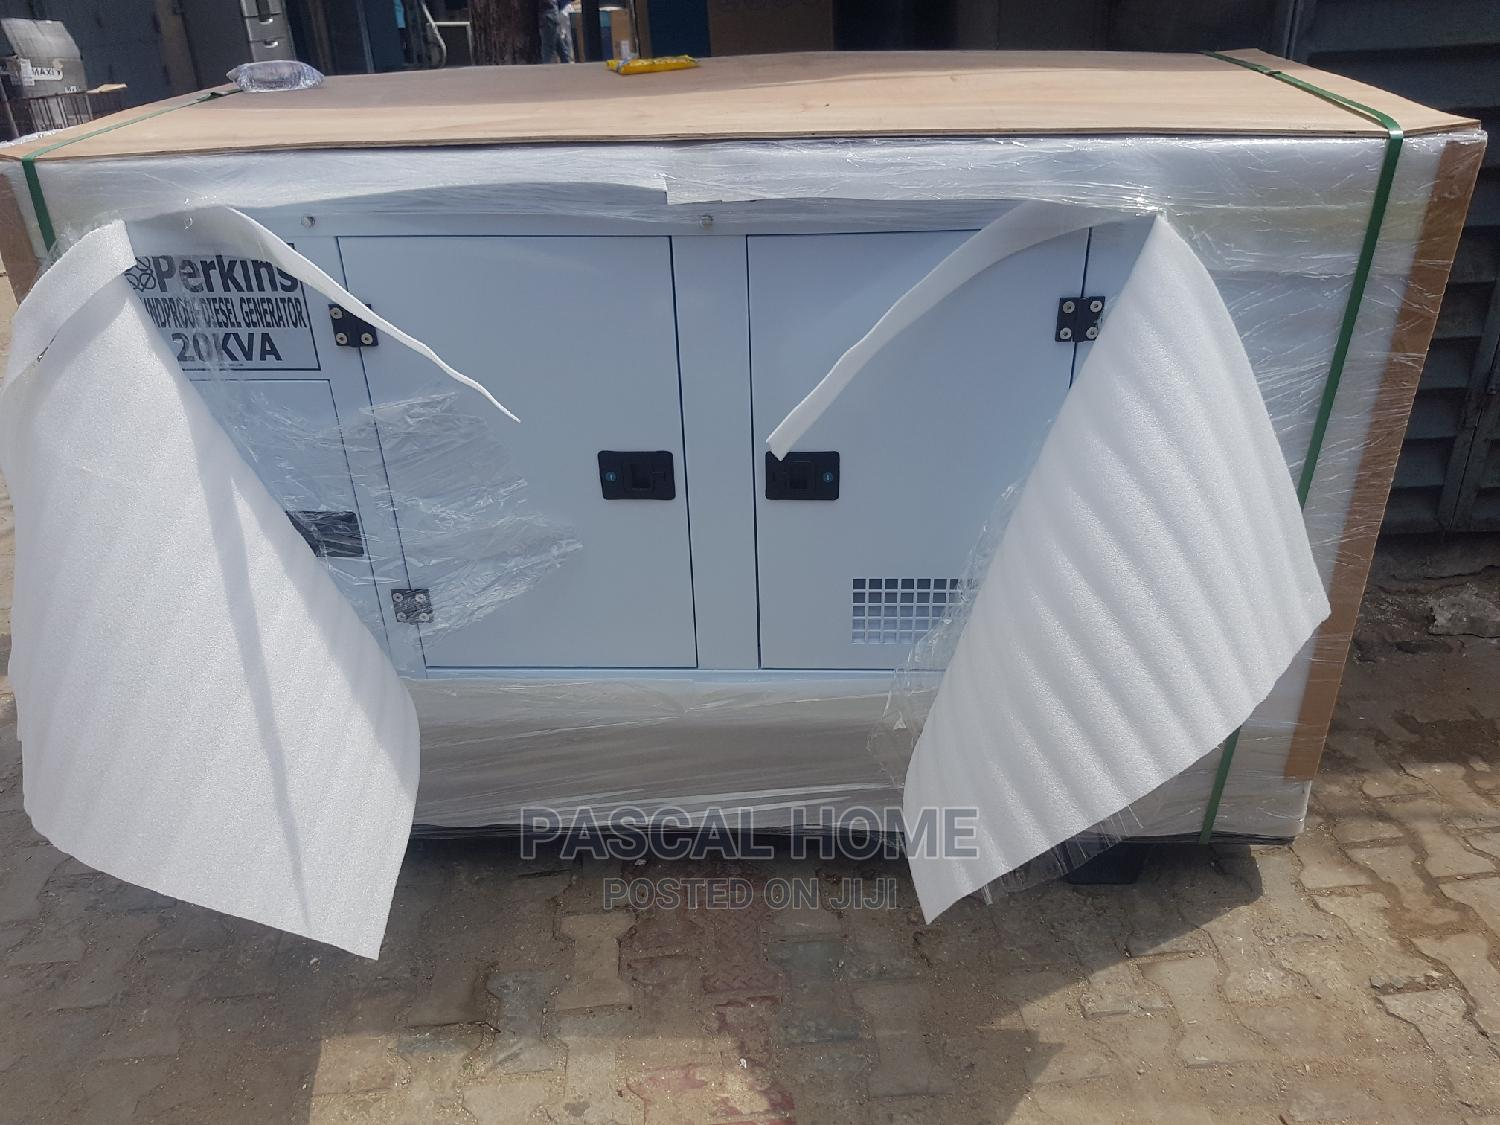 Perkins 20kva Soundproof Generator   Electrical Equipment for sale in Ojo, Lagos State, Nigeria